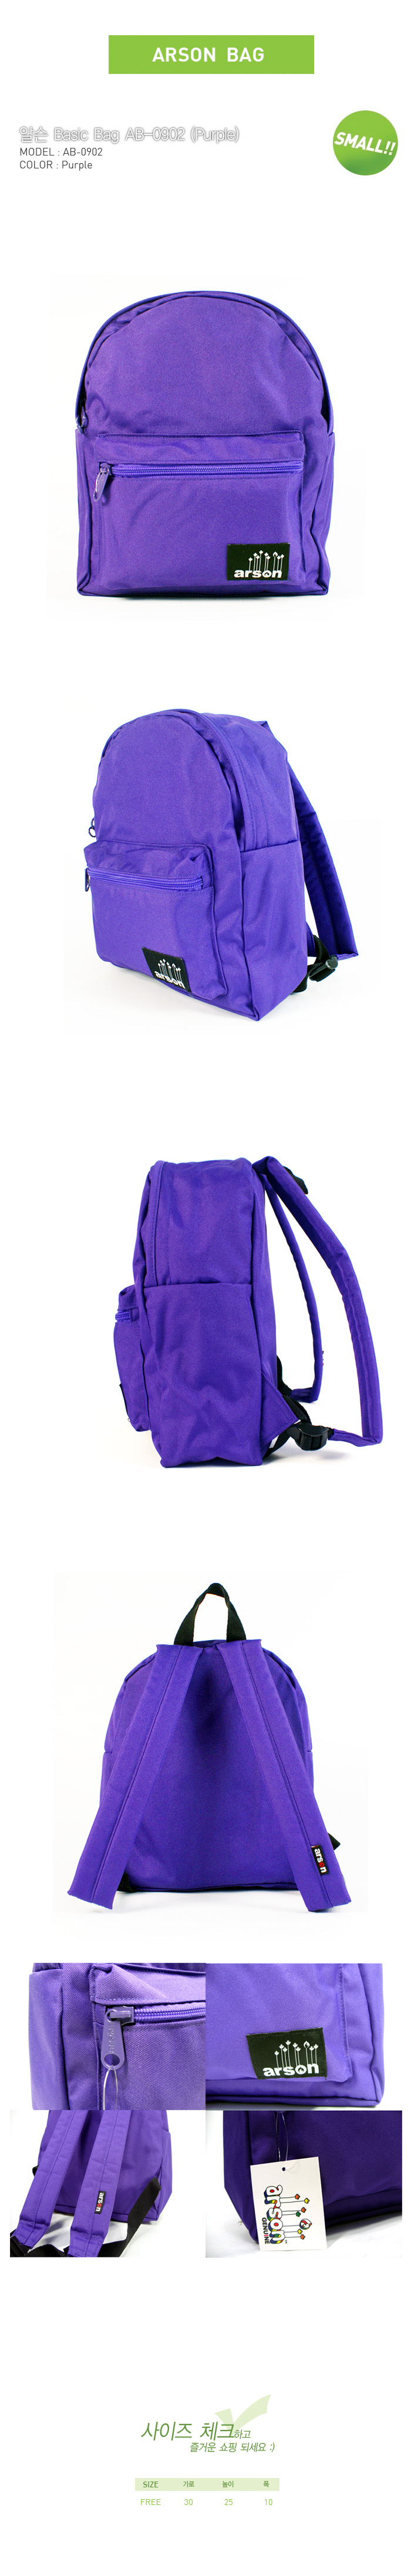 [ ARSON ] AB-0902 (Purple)/Backpack School Bag